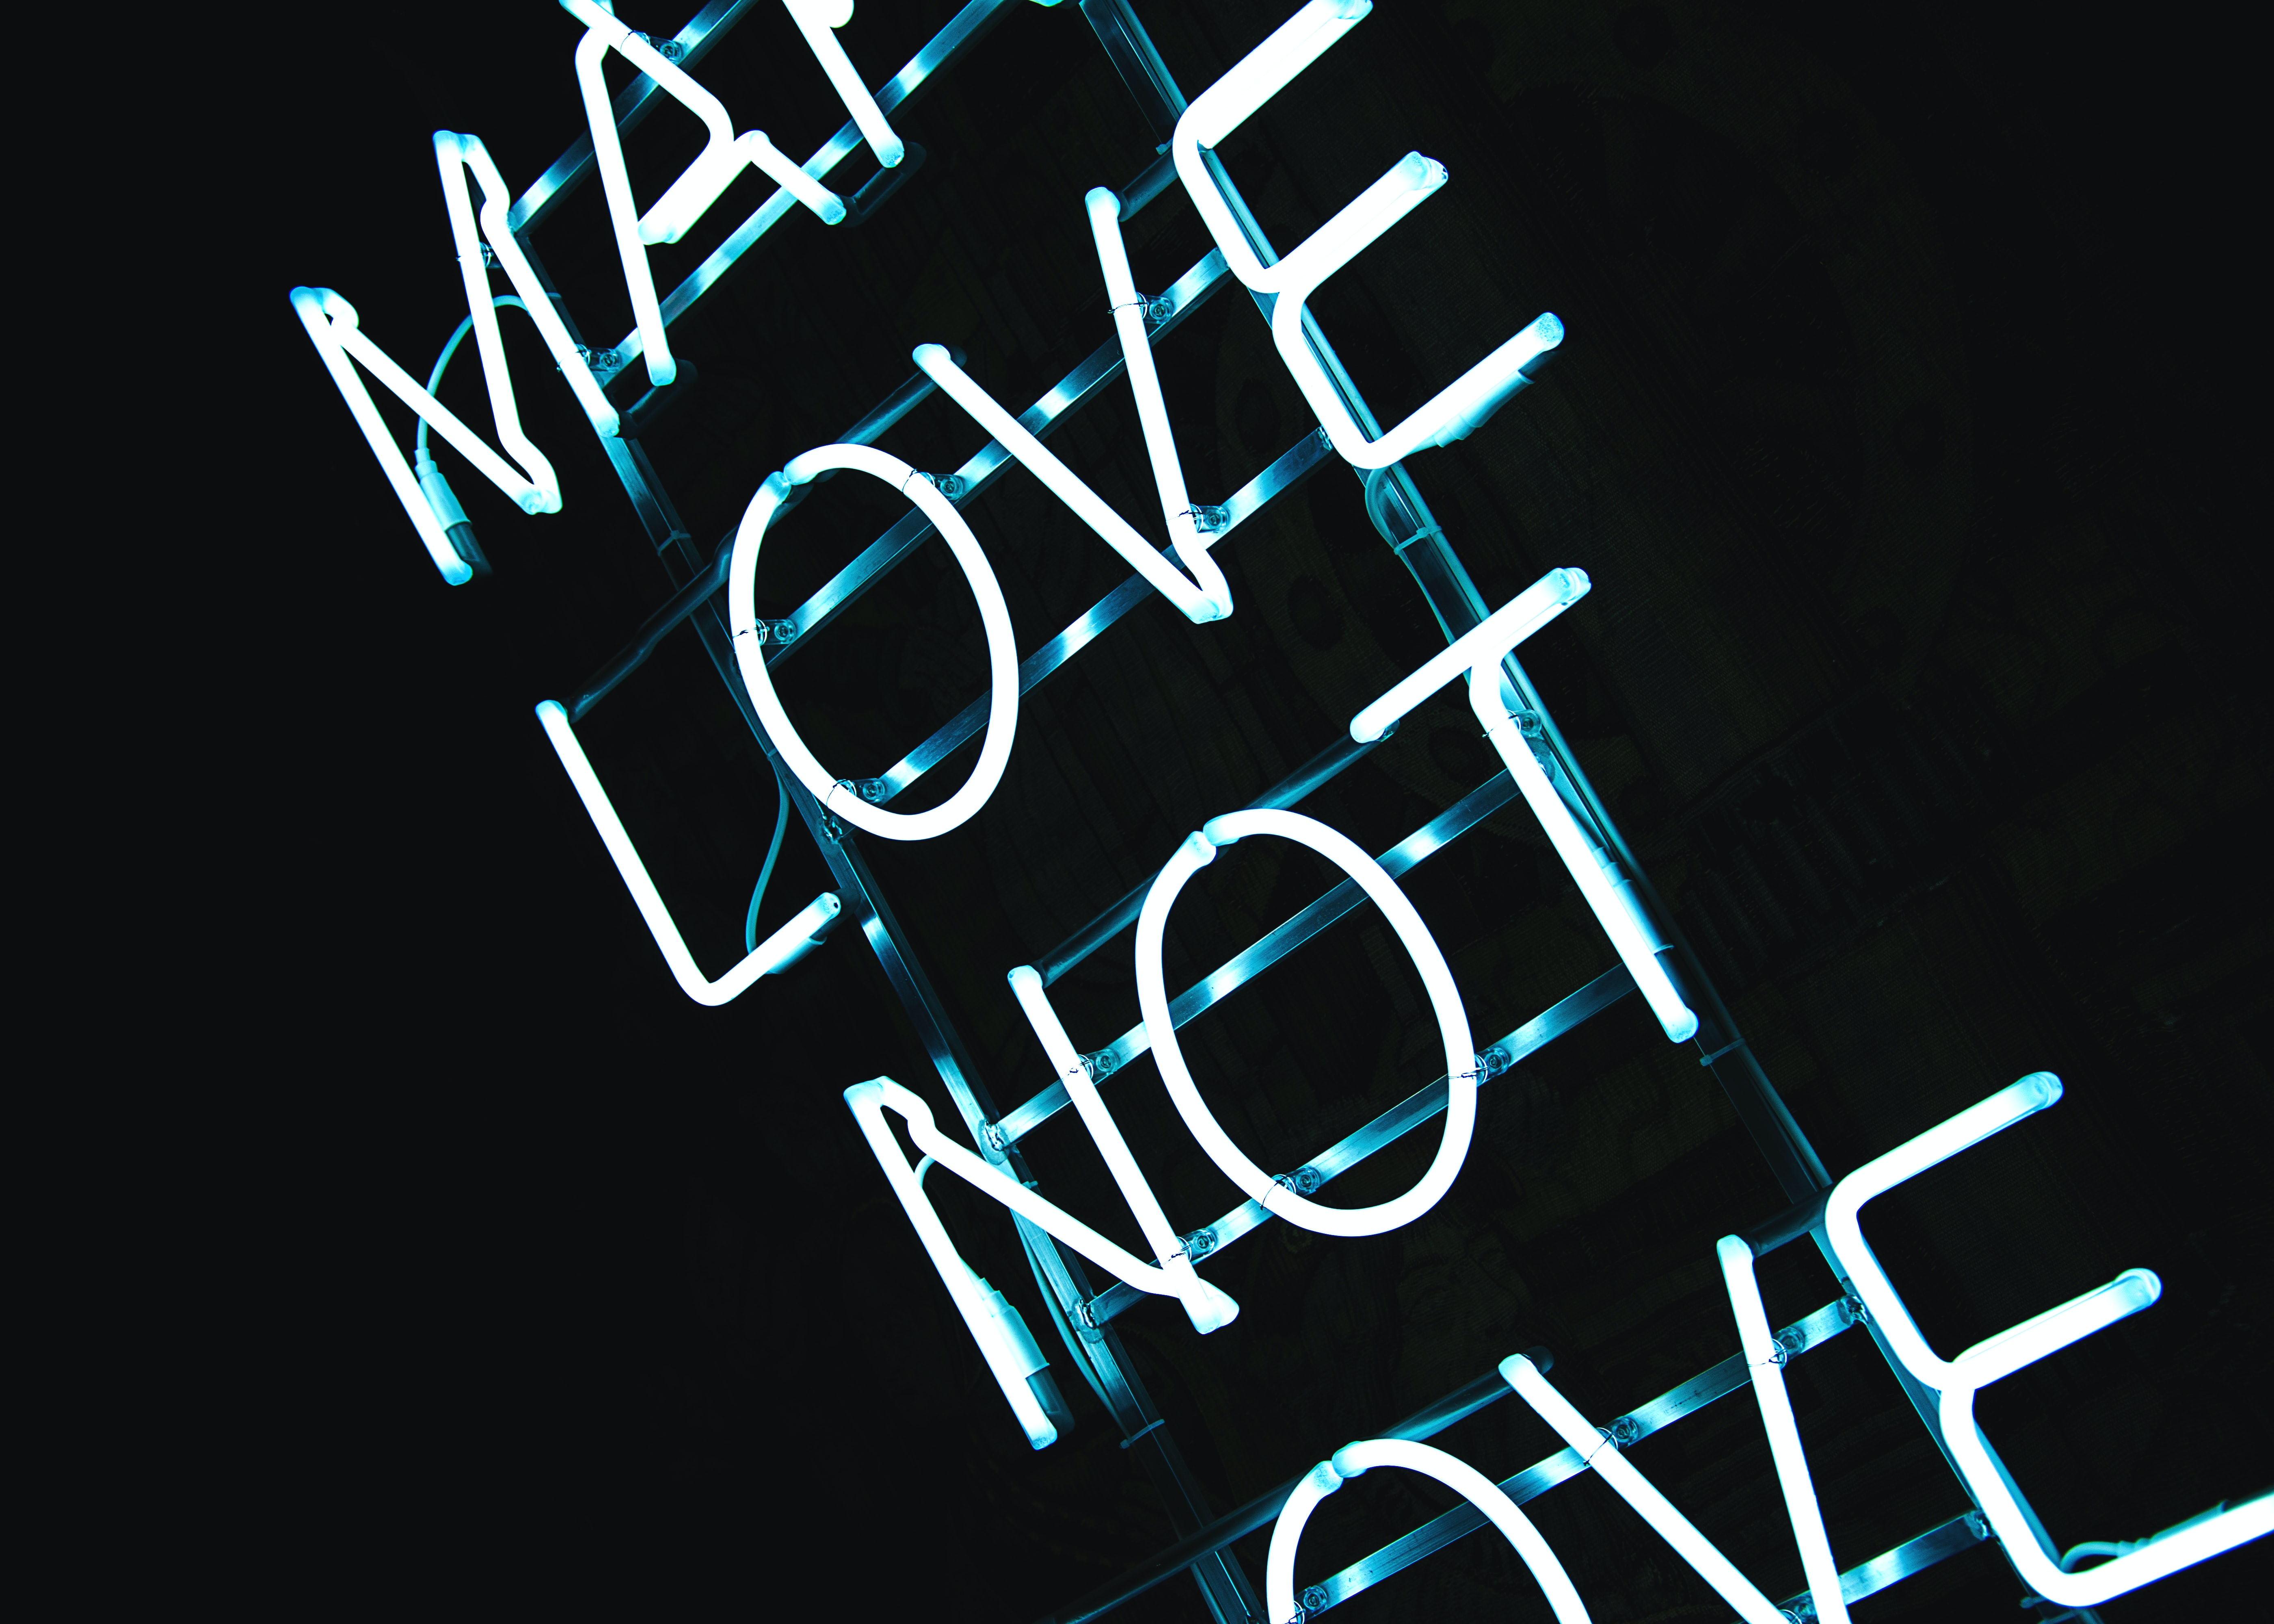 Blue neon light sign on black background reads Make Love Not Love